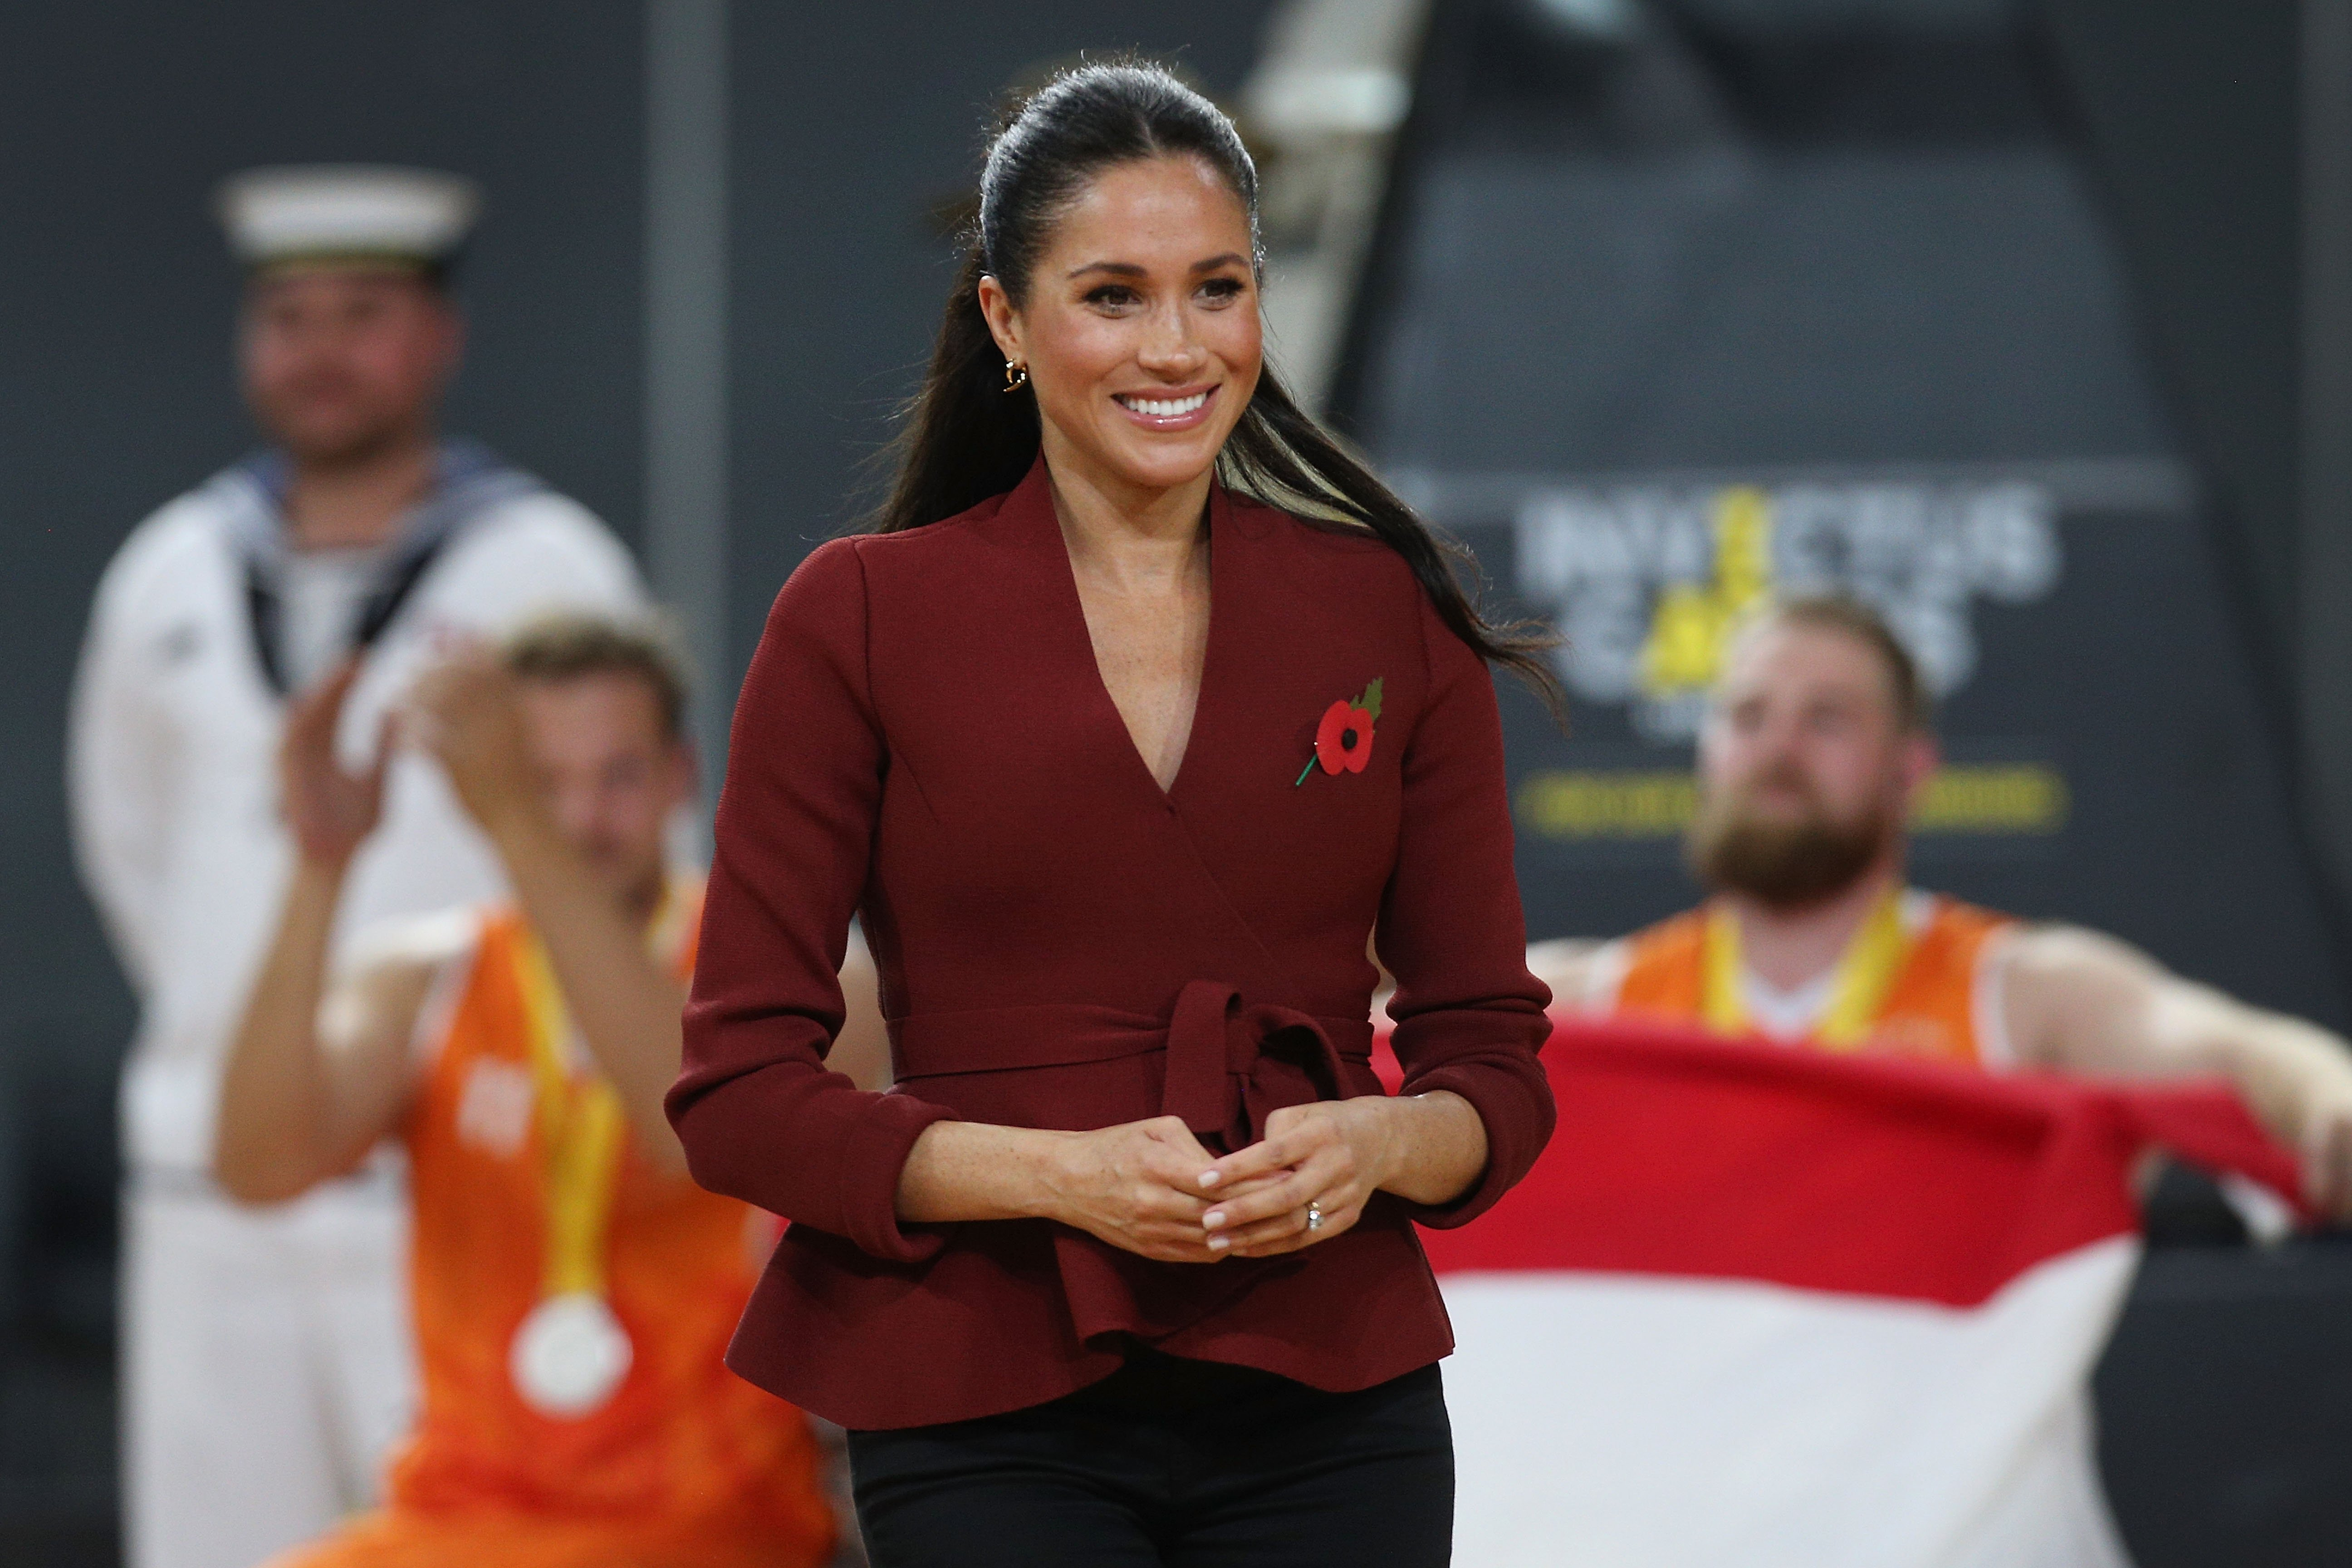 Meghan, Duchess of Sussex at the Invictus Games in Australia on October 27, 2018. Photo: Getty Images